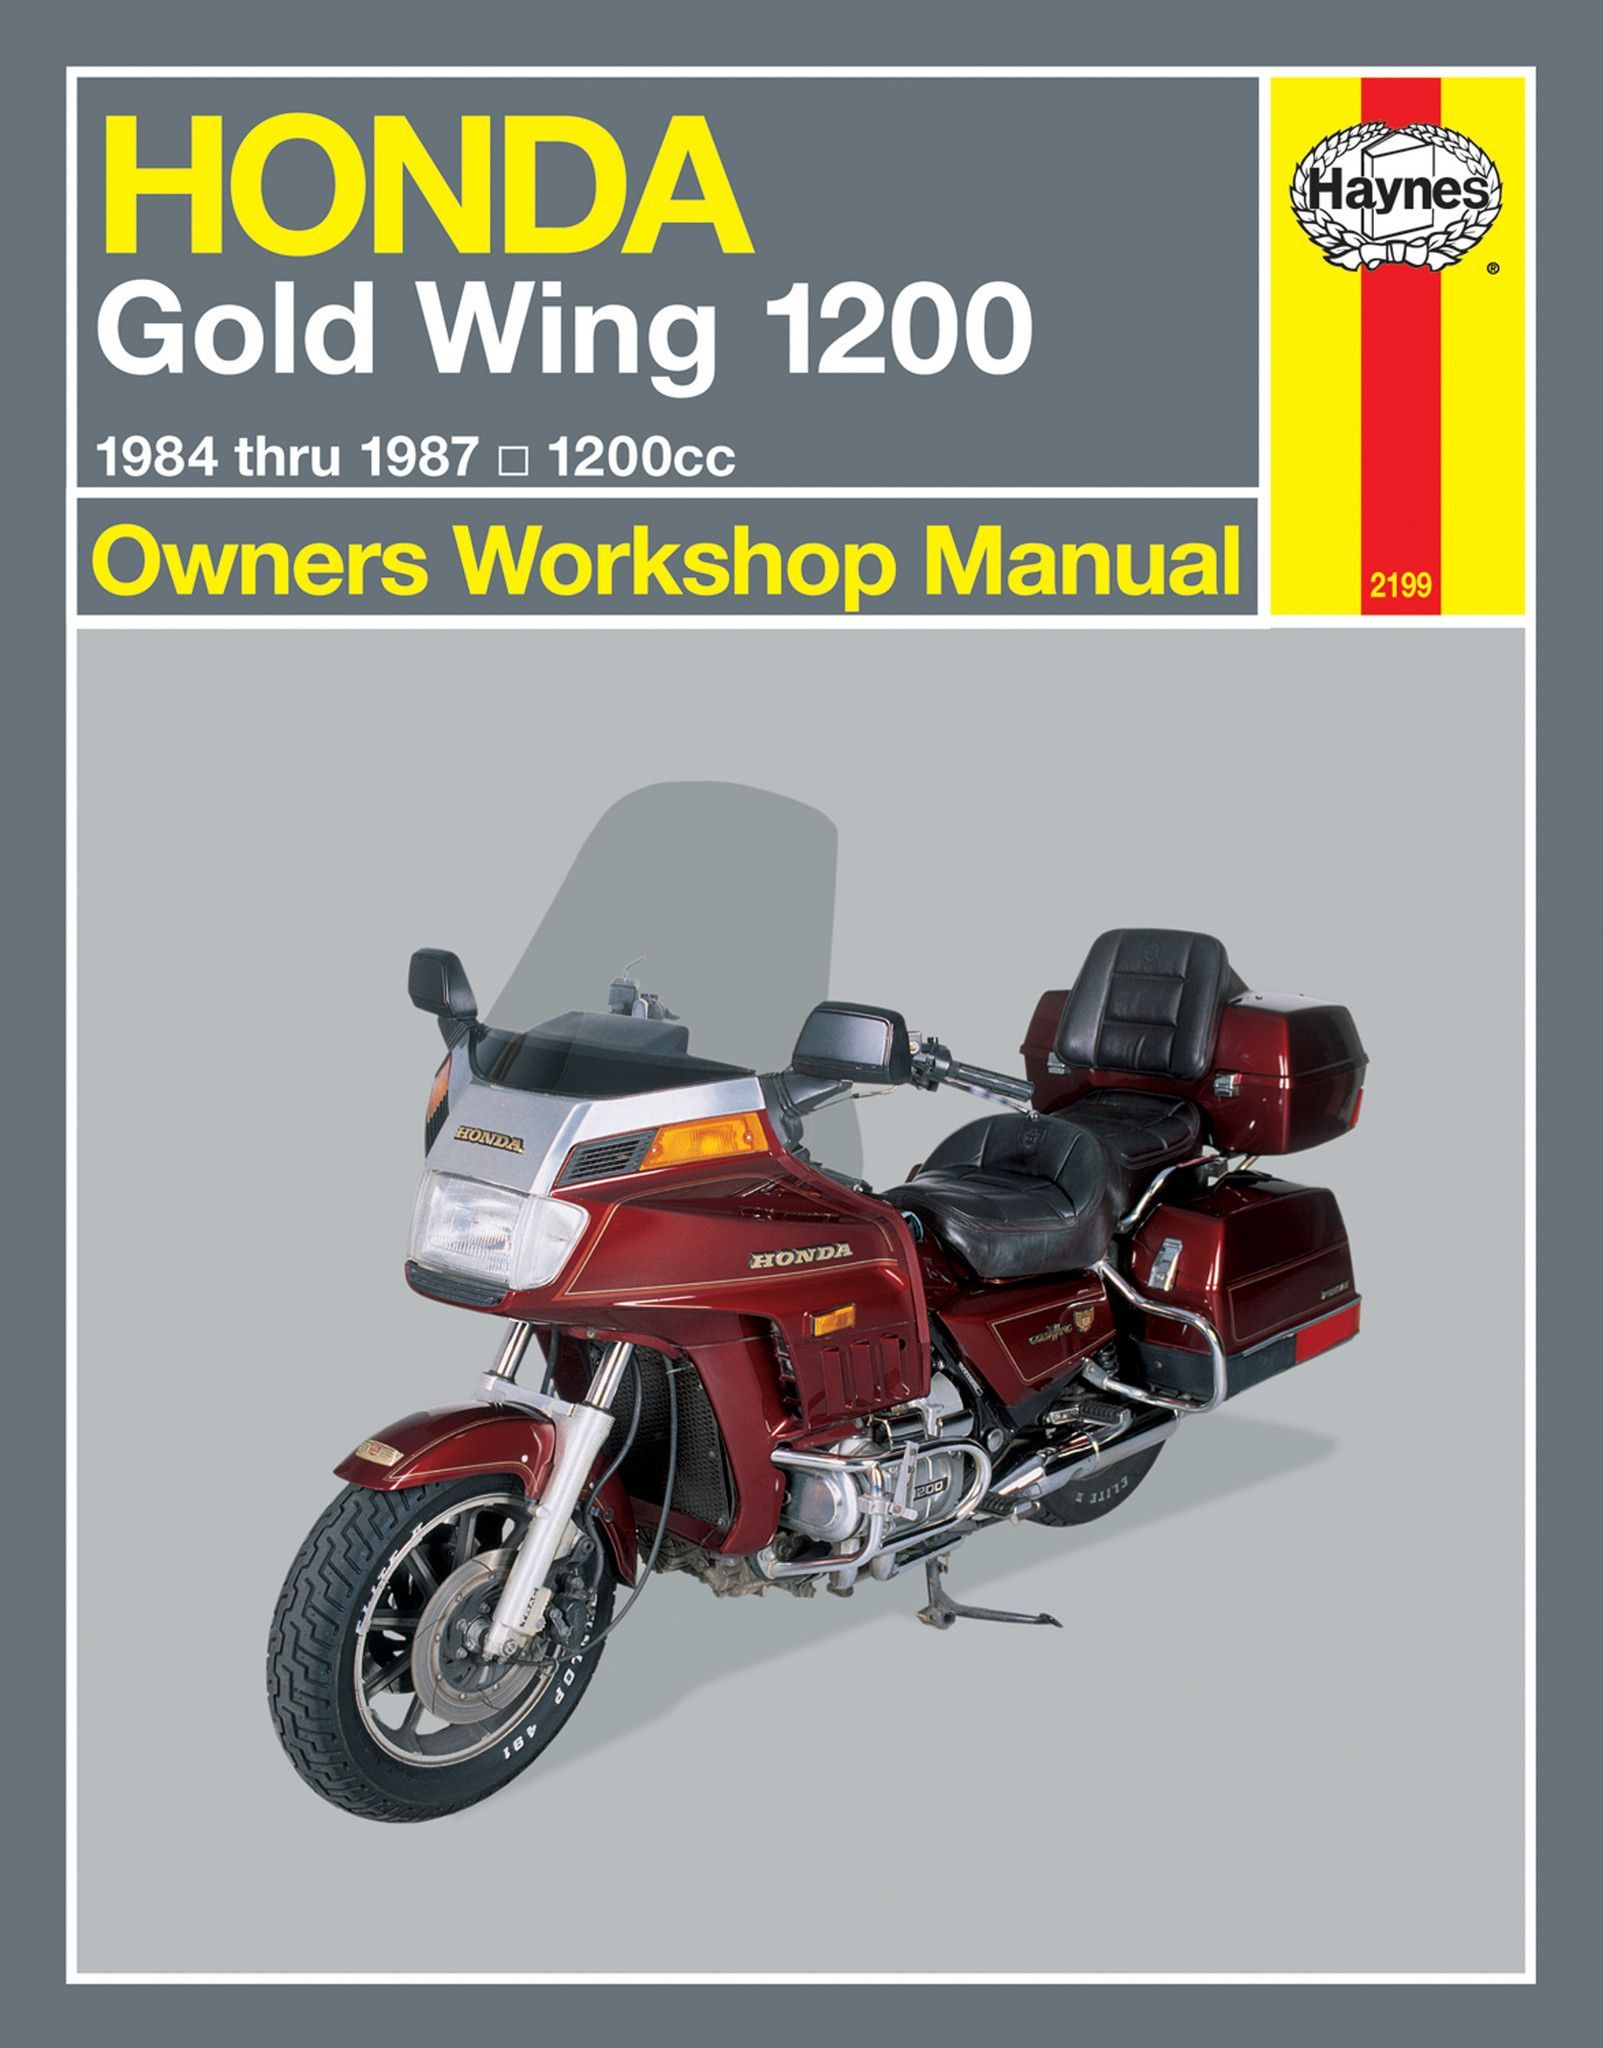 Haynes M2199 Repair Manual for 1984-87 Honda Gold Wing 1200